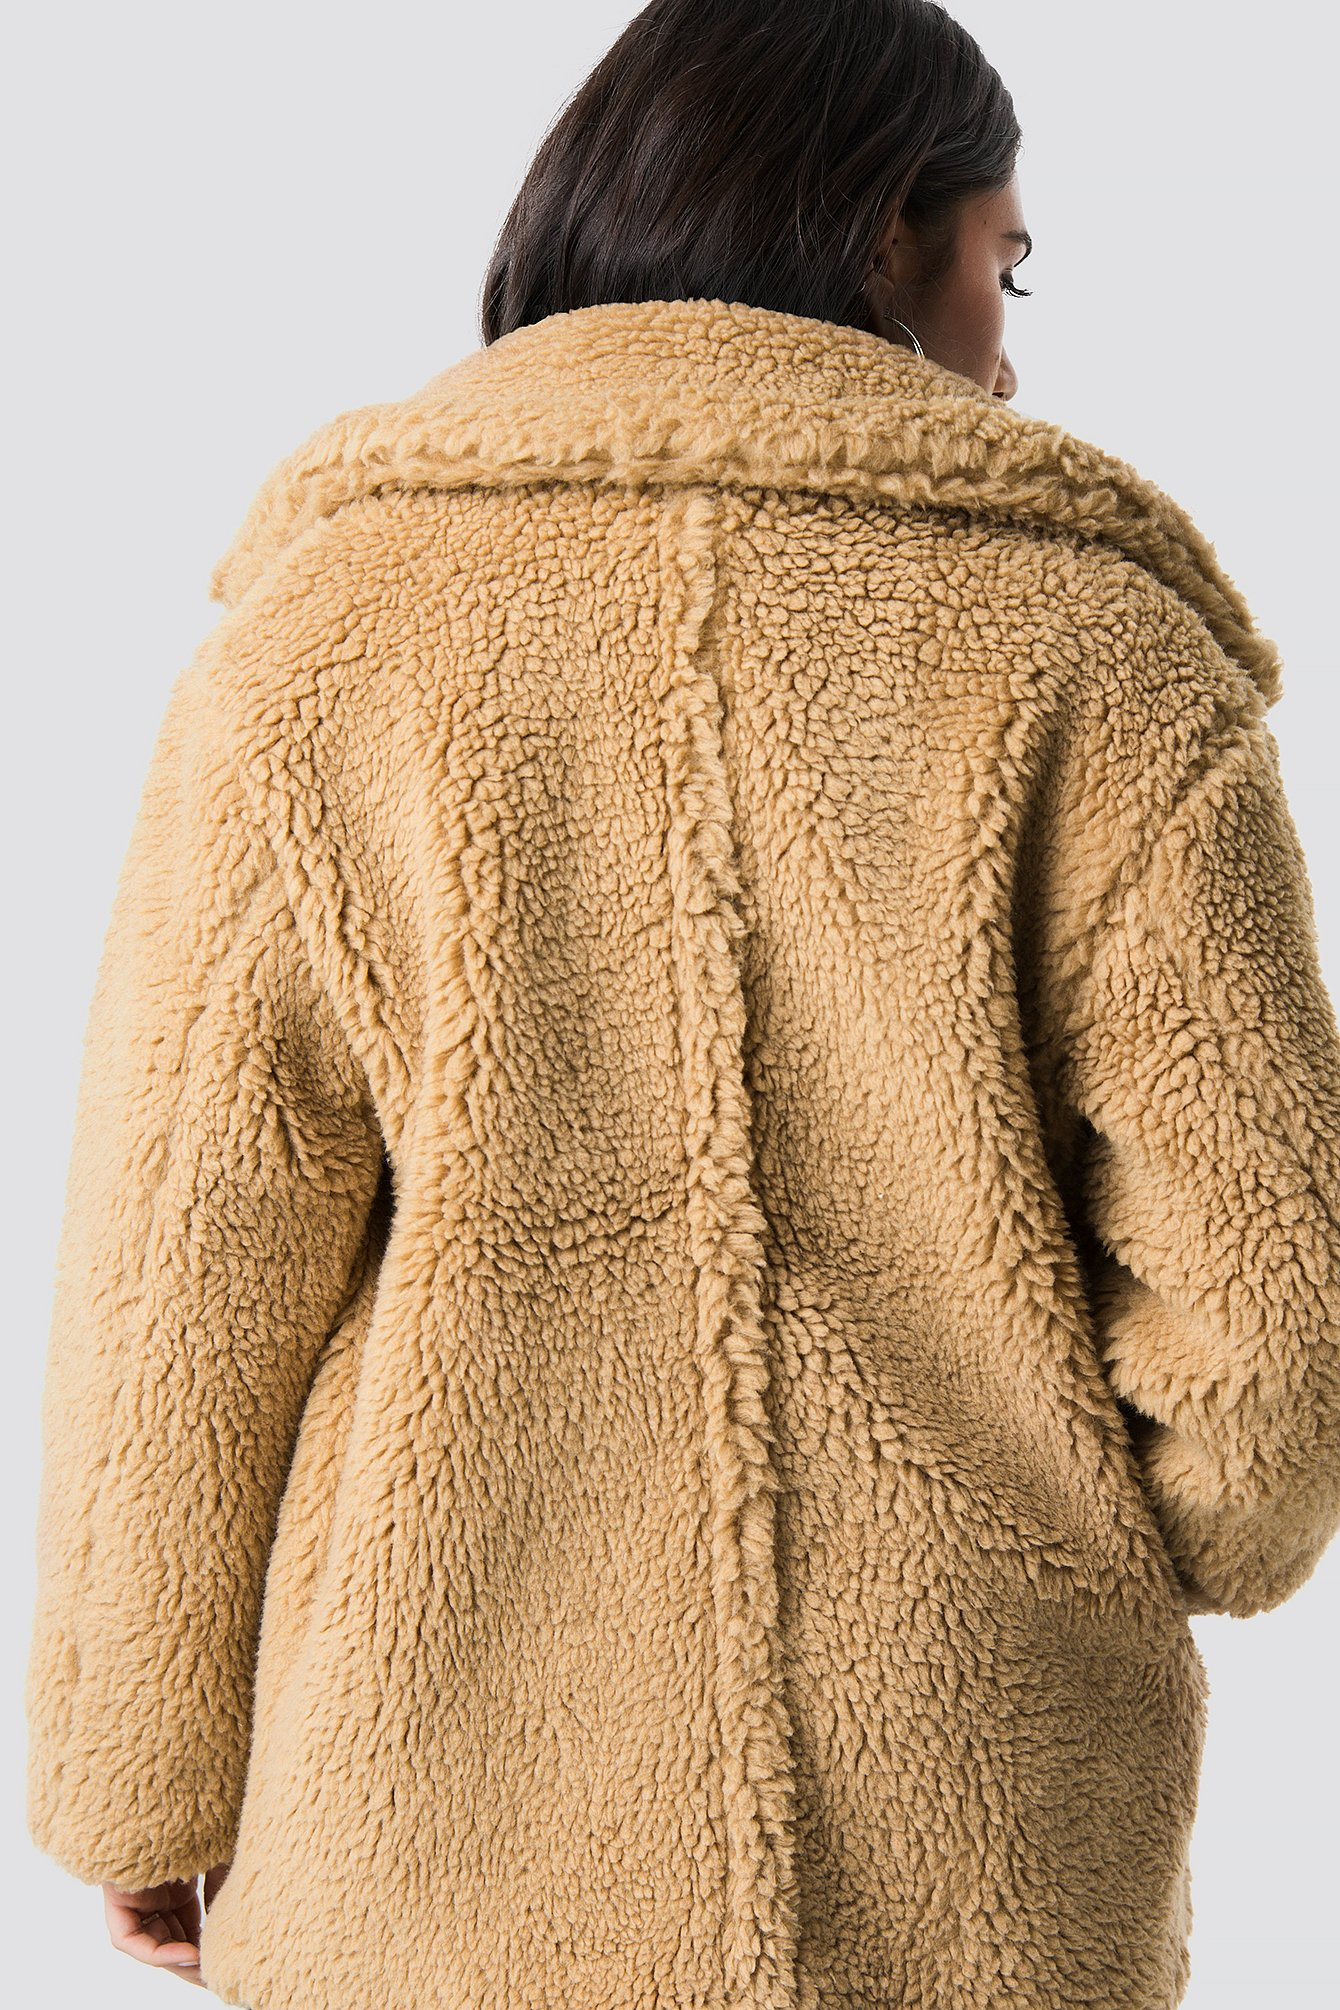 dilara x na-kd -  Soft Teddy Jacket - Brown